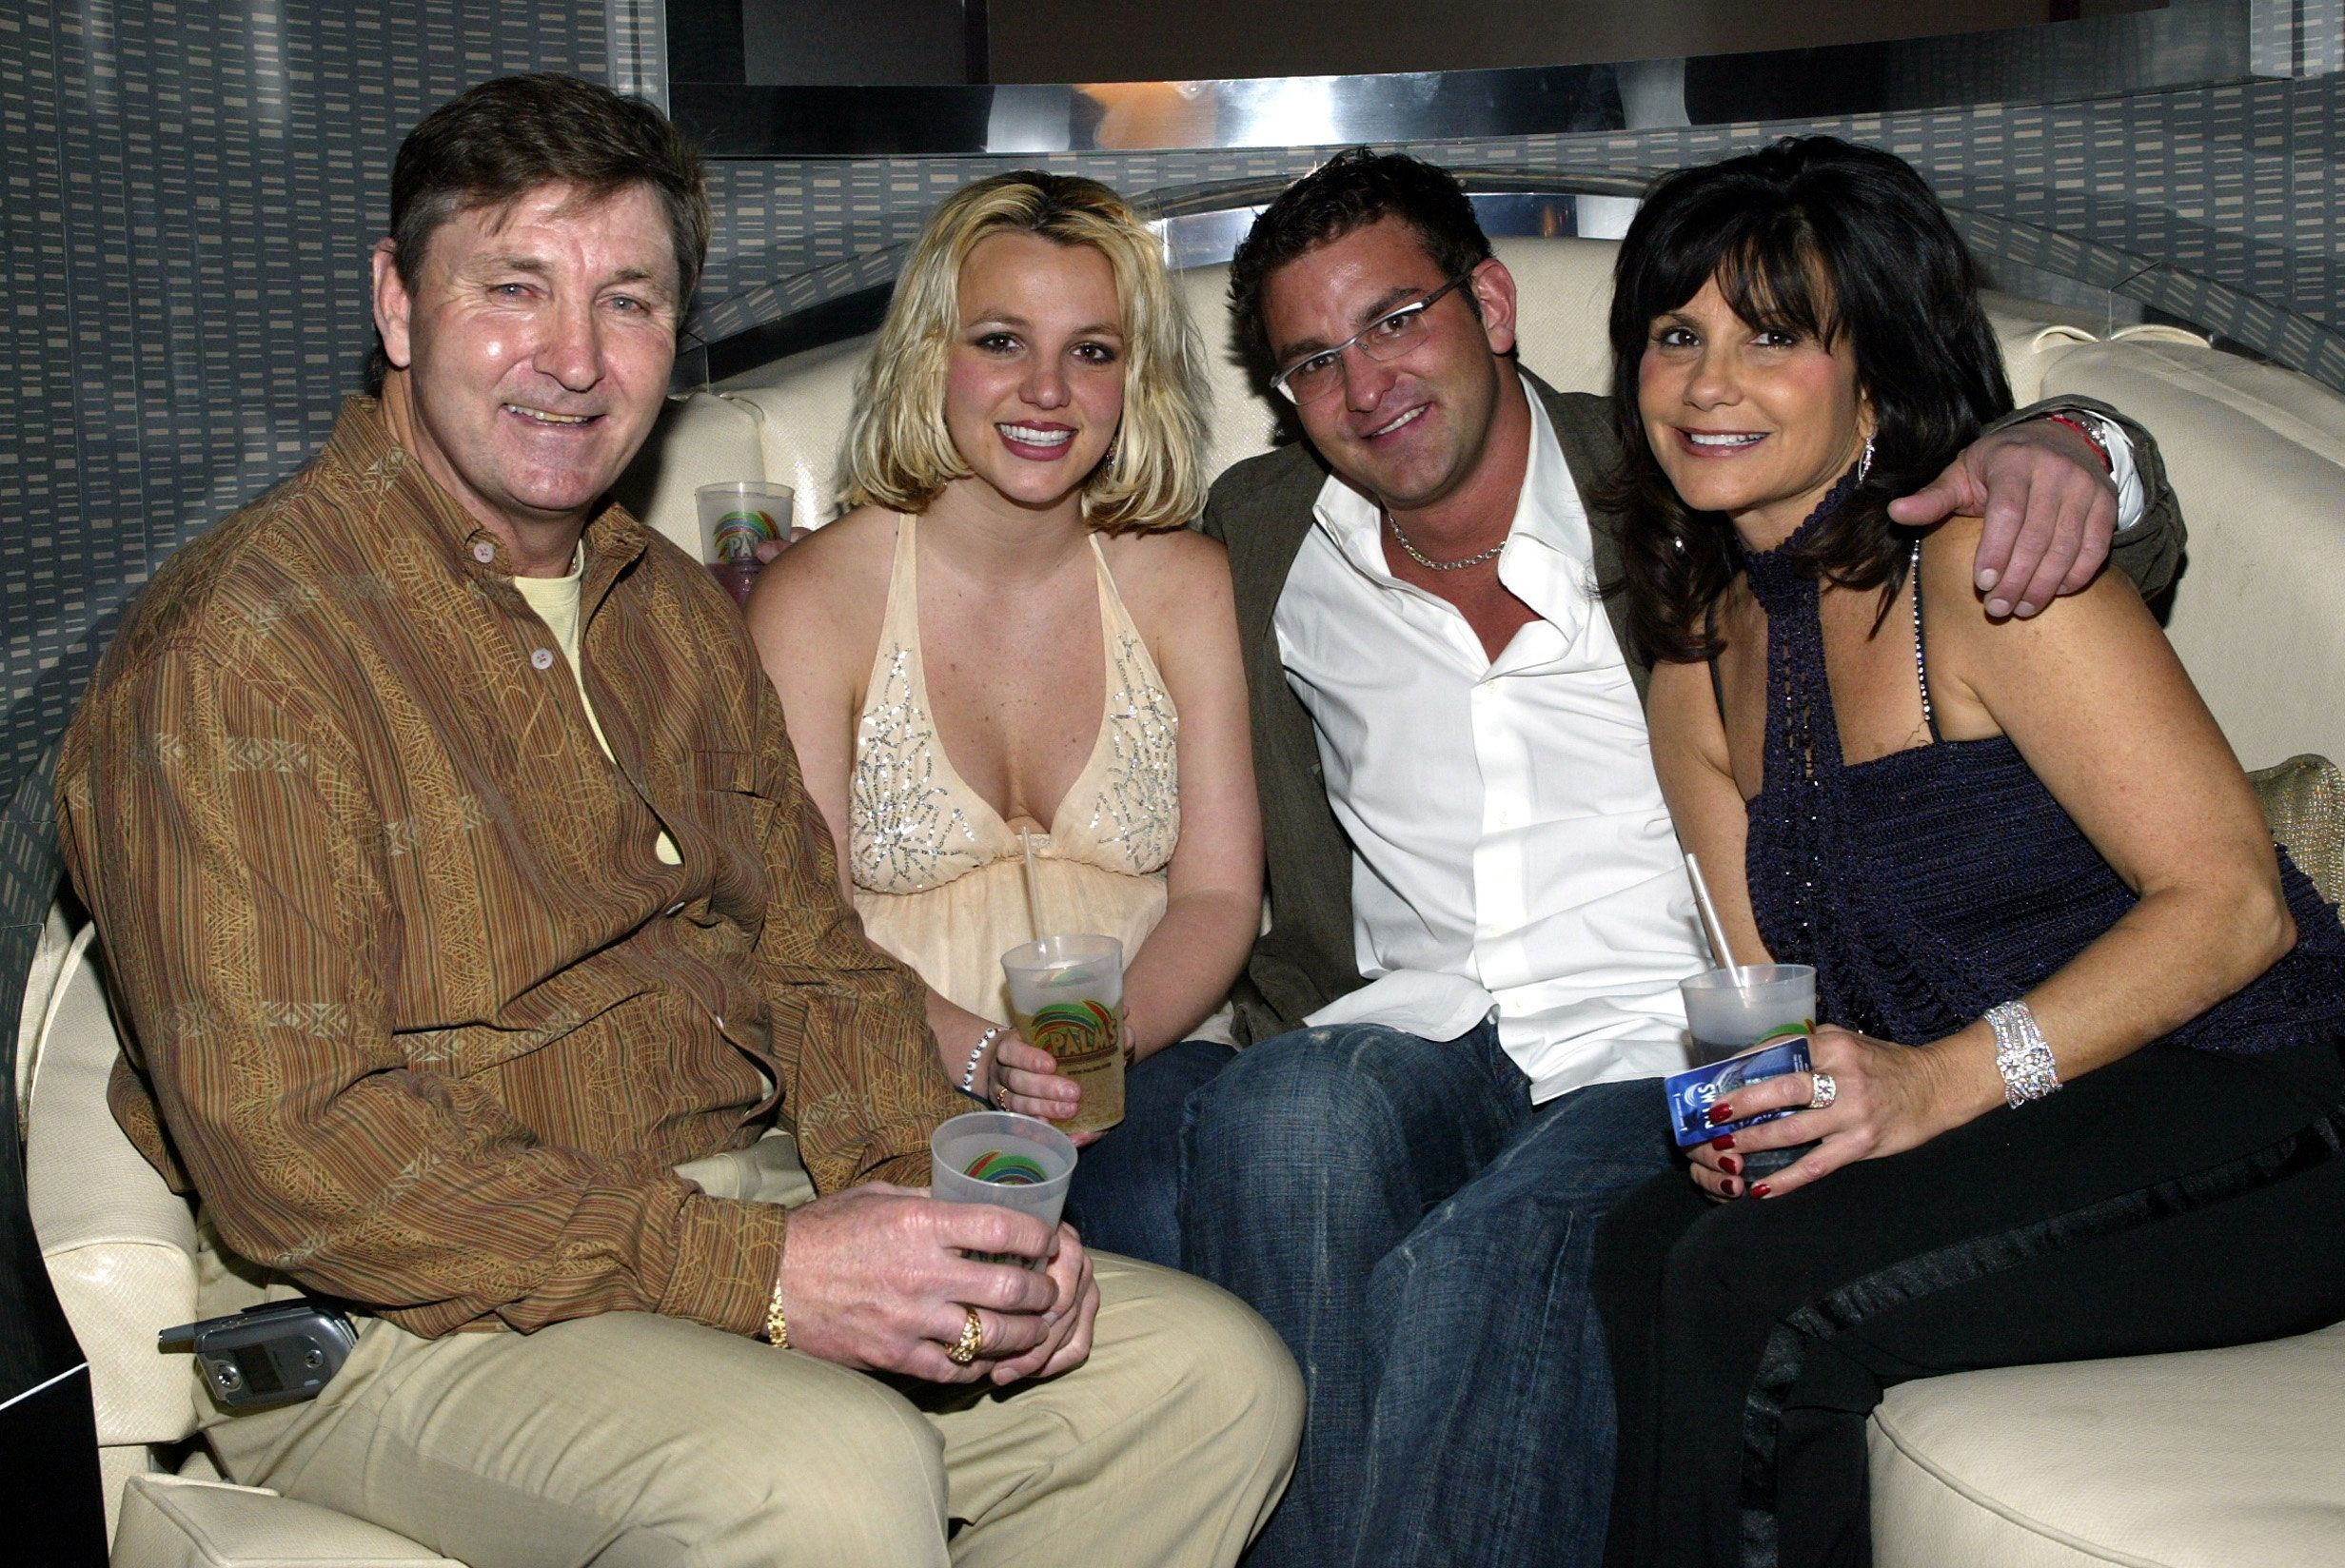 Britney Spears with her father Jamie, brother Bryan, and mother Lynne in 2006.